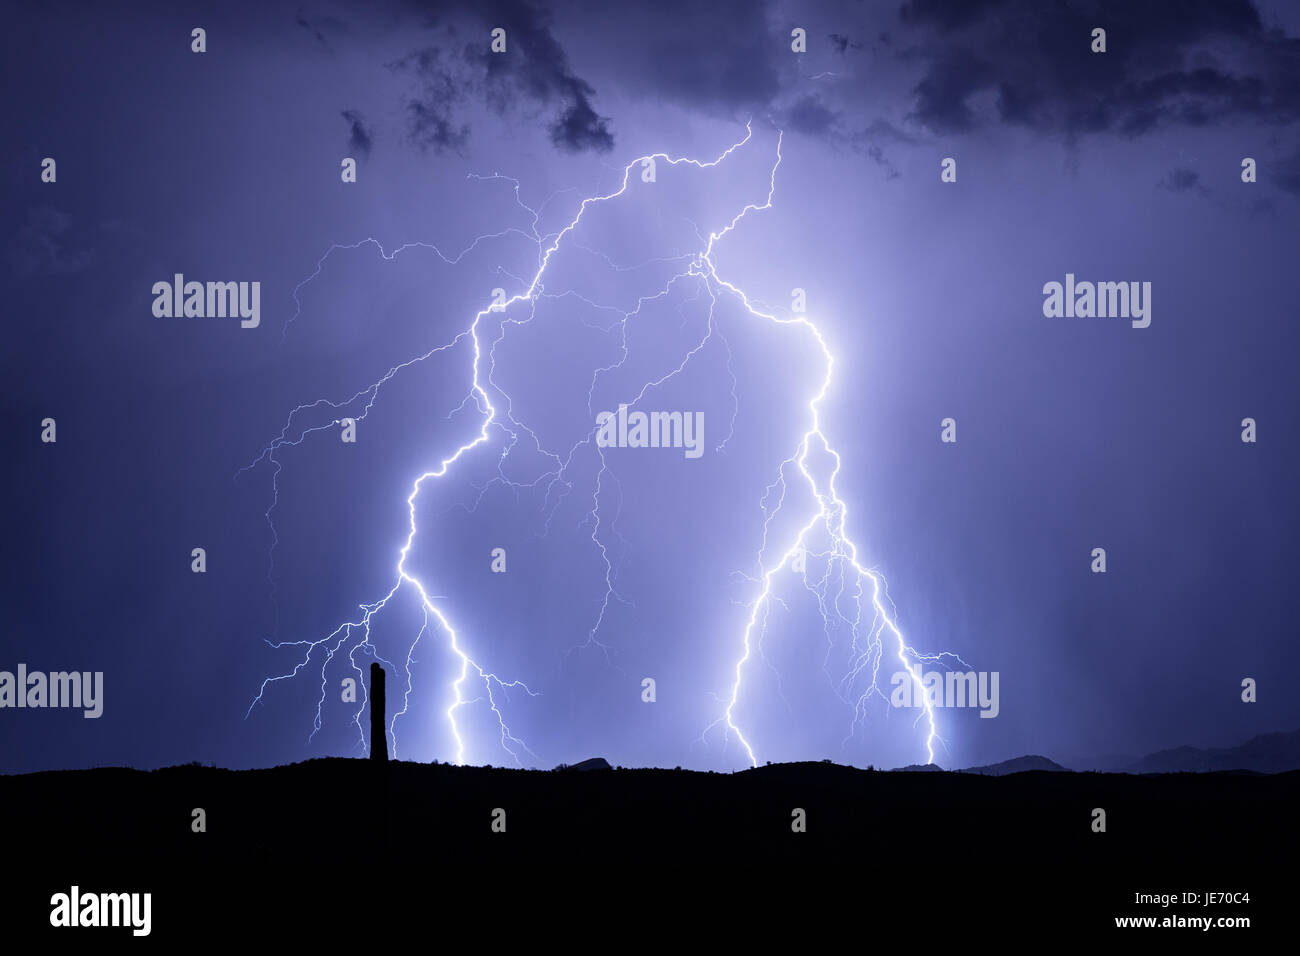 Lightning Background High Resolution Stock Photography And Images Alamy Download all photos and use them even for commercial projects. alamy